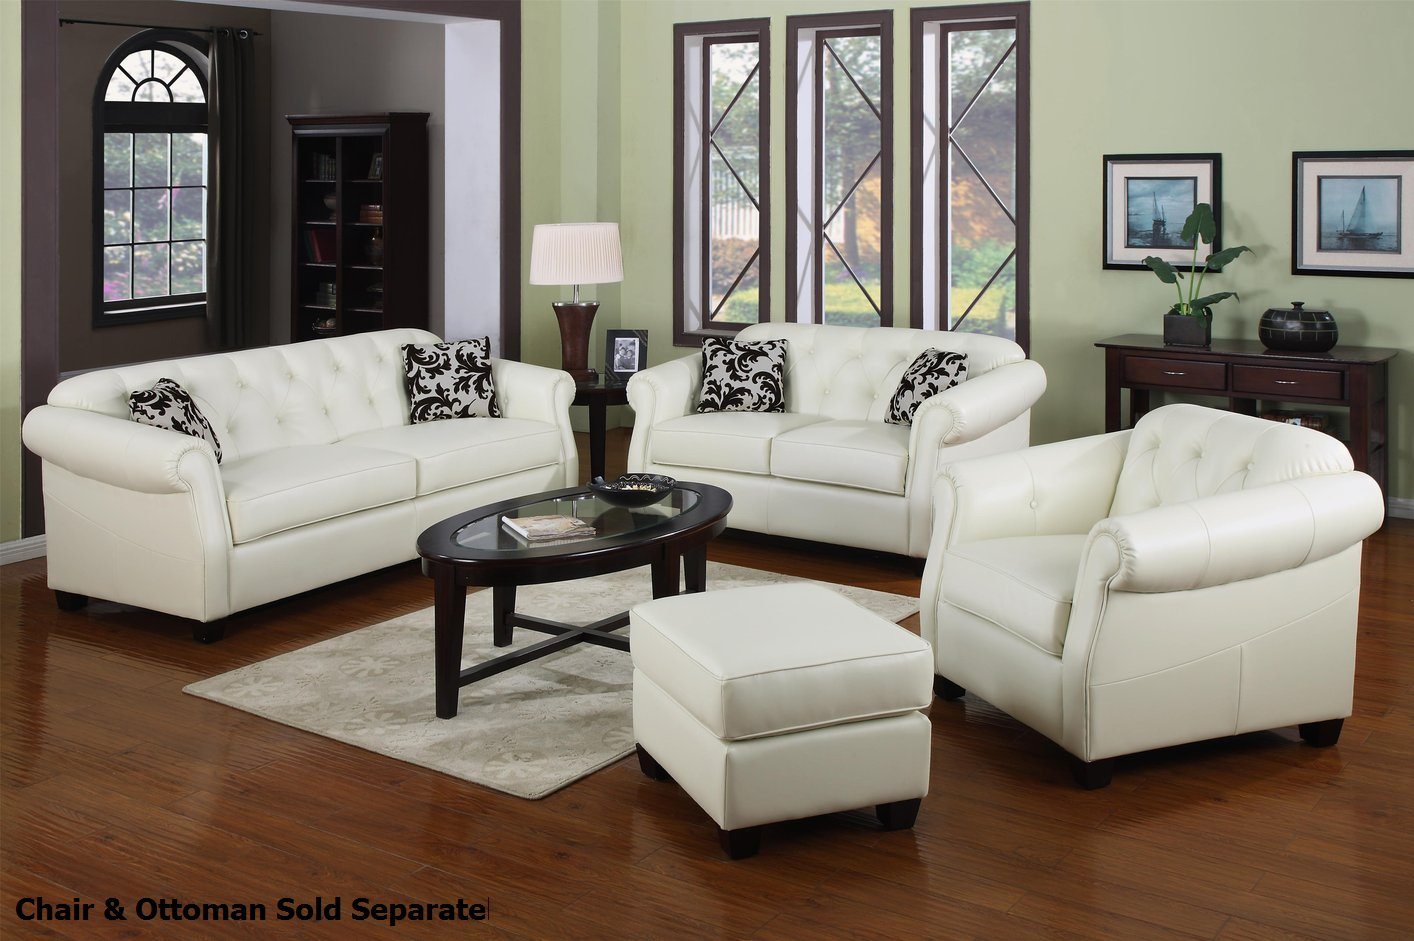 attachment white by leather property home in ideas couches living cool pleasant room furniture design model fresh interior